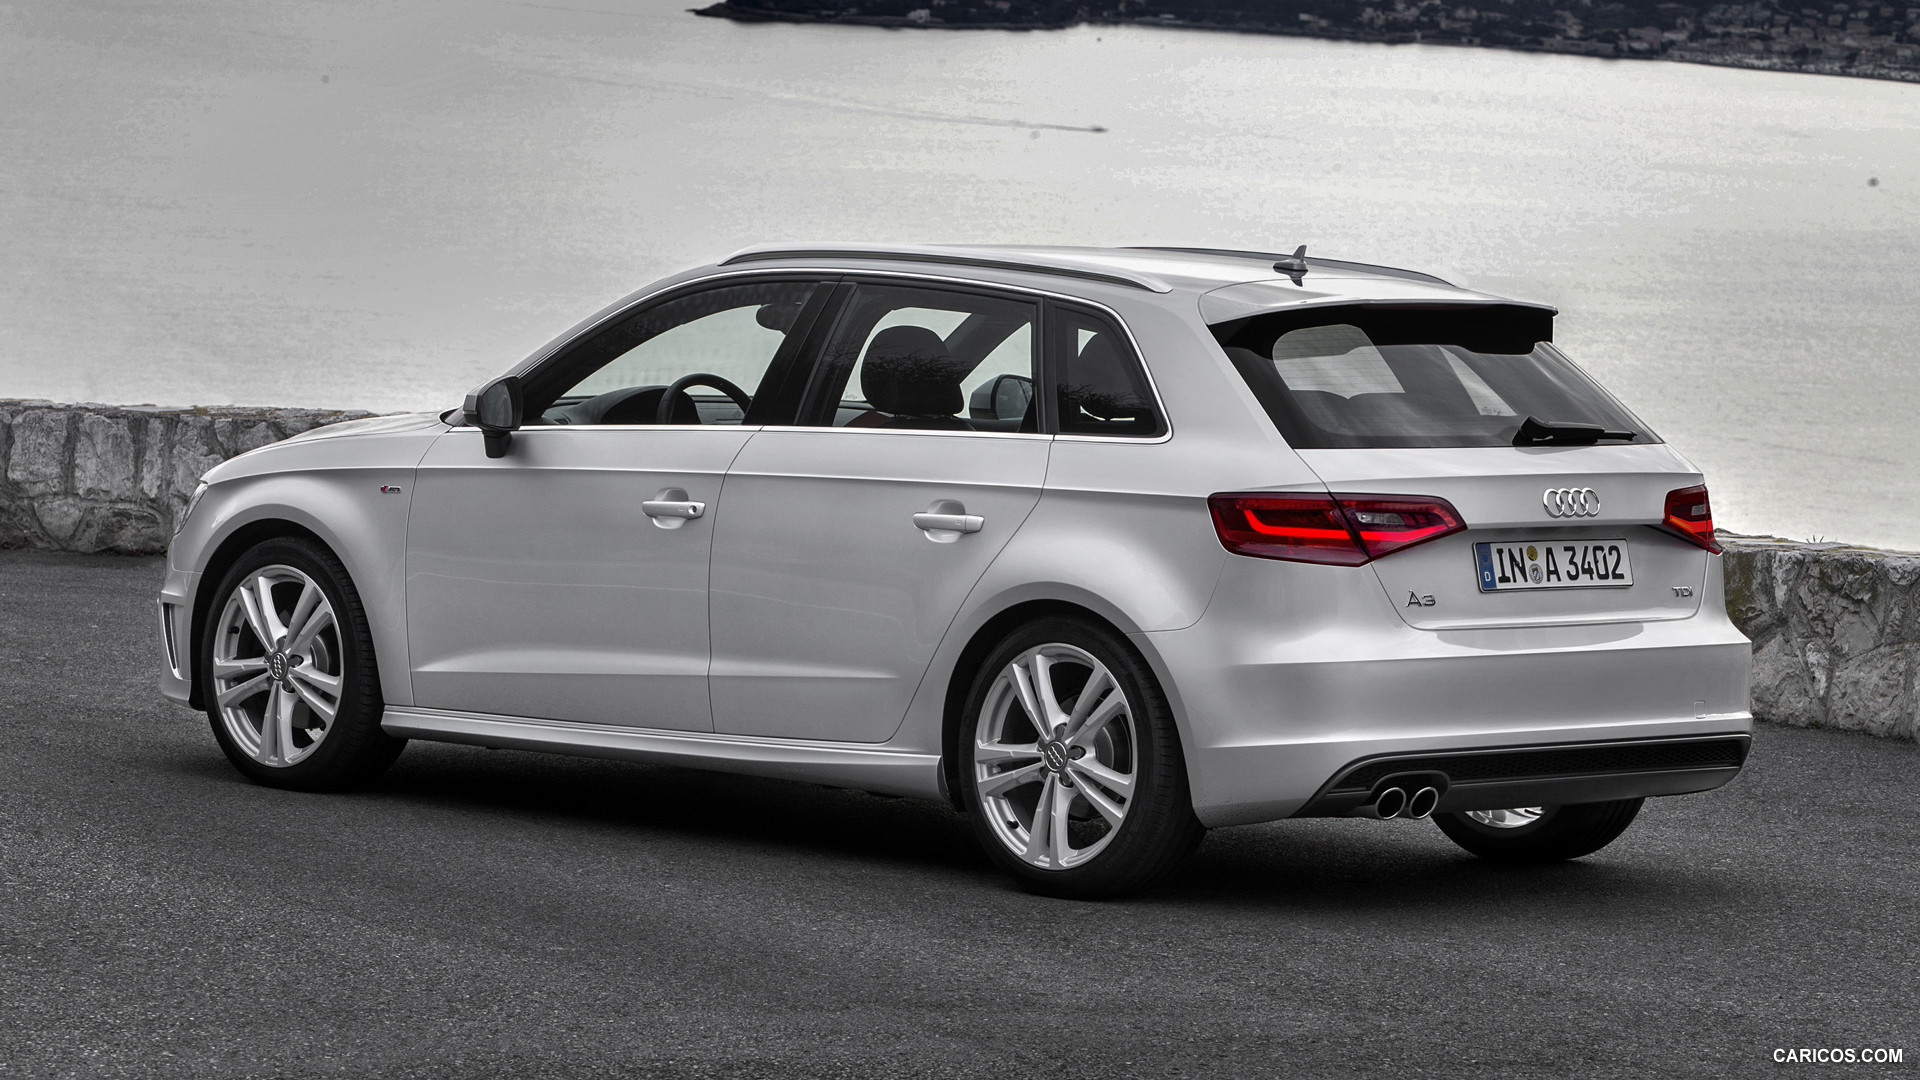 2013 Audi A3 Sportback S Line HD Wallpaper